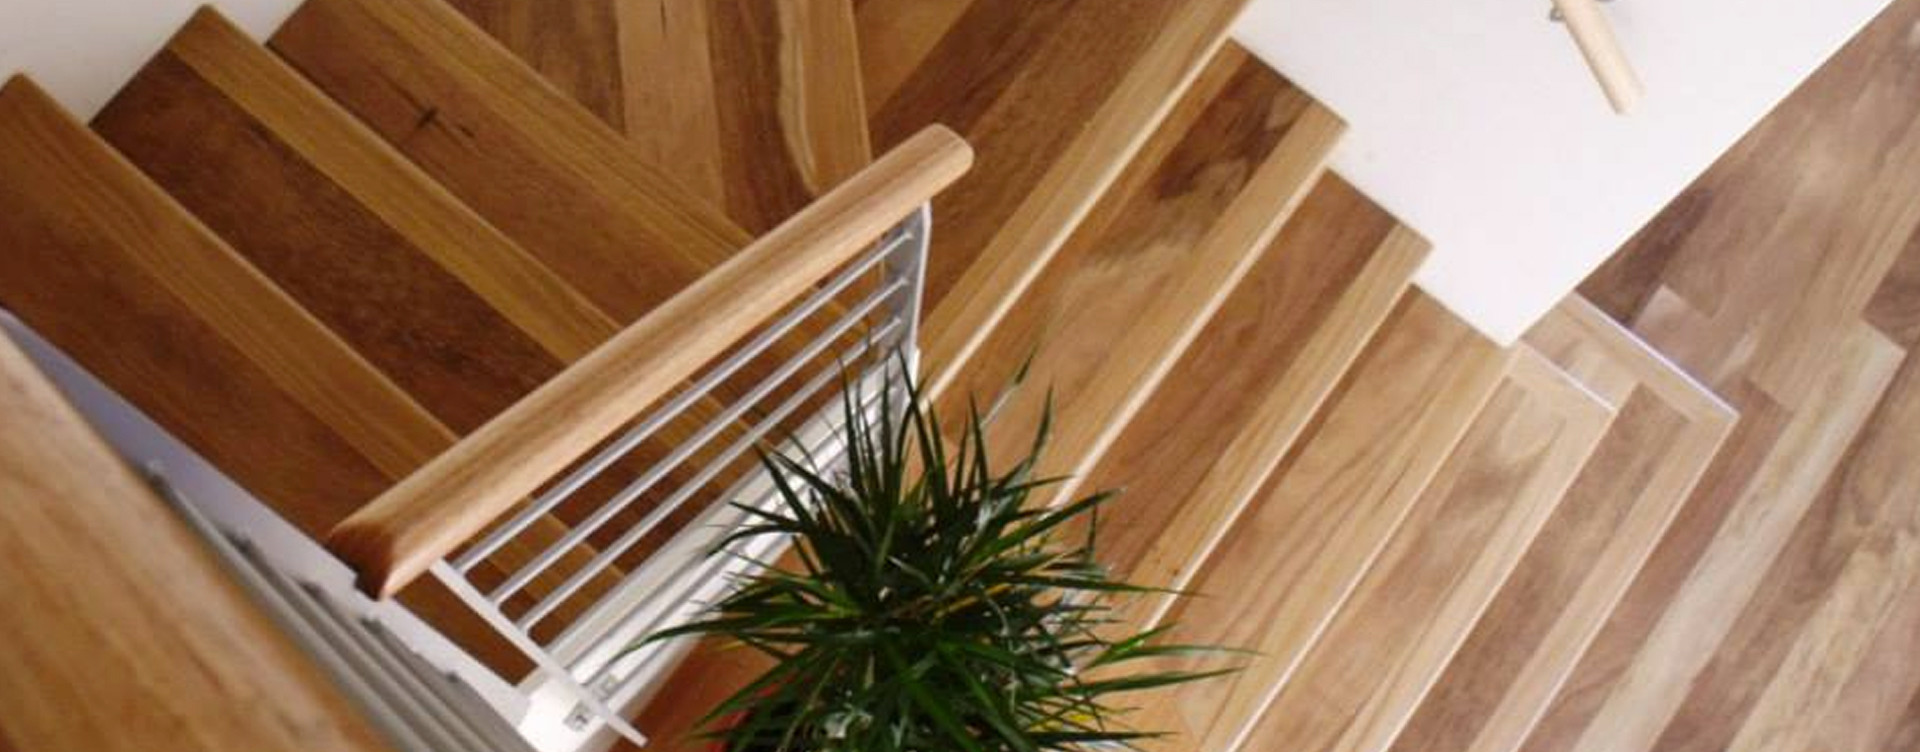 hardwood floor refinishing bend oregon of timber flooring perth coastal flooring wa quality wooden throughout flooring installation options